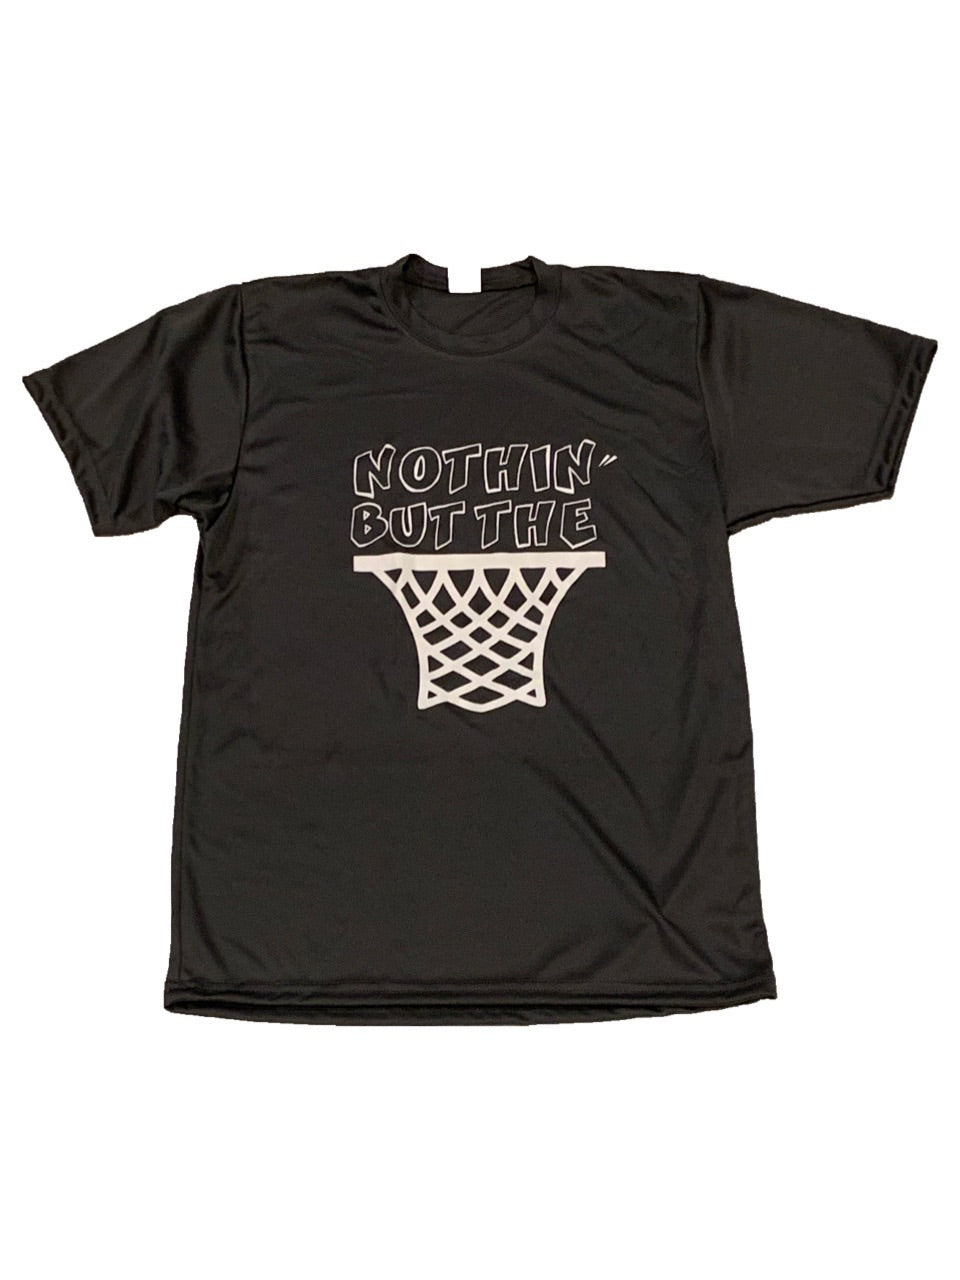 NOTHIN' BUT THE NET DRIFIT TEE